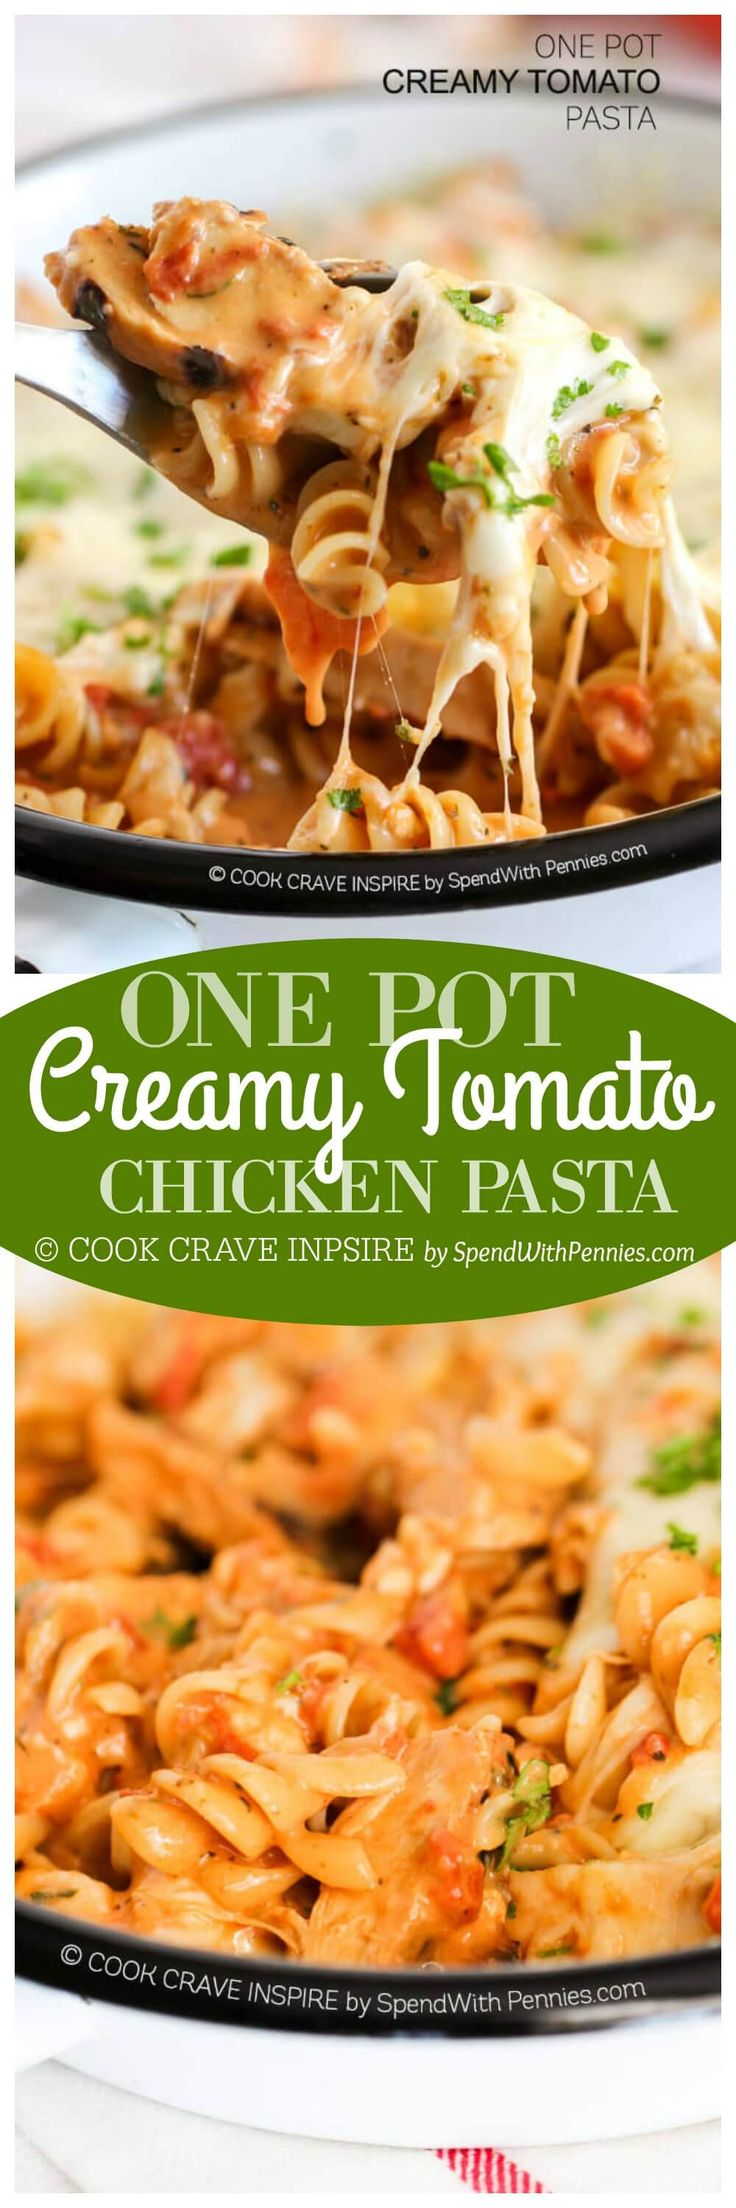 One Pot Creamy Tomato Pasta! This is one of my favorite one pot pasta recipes…